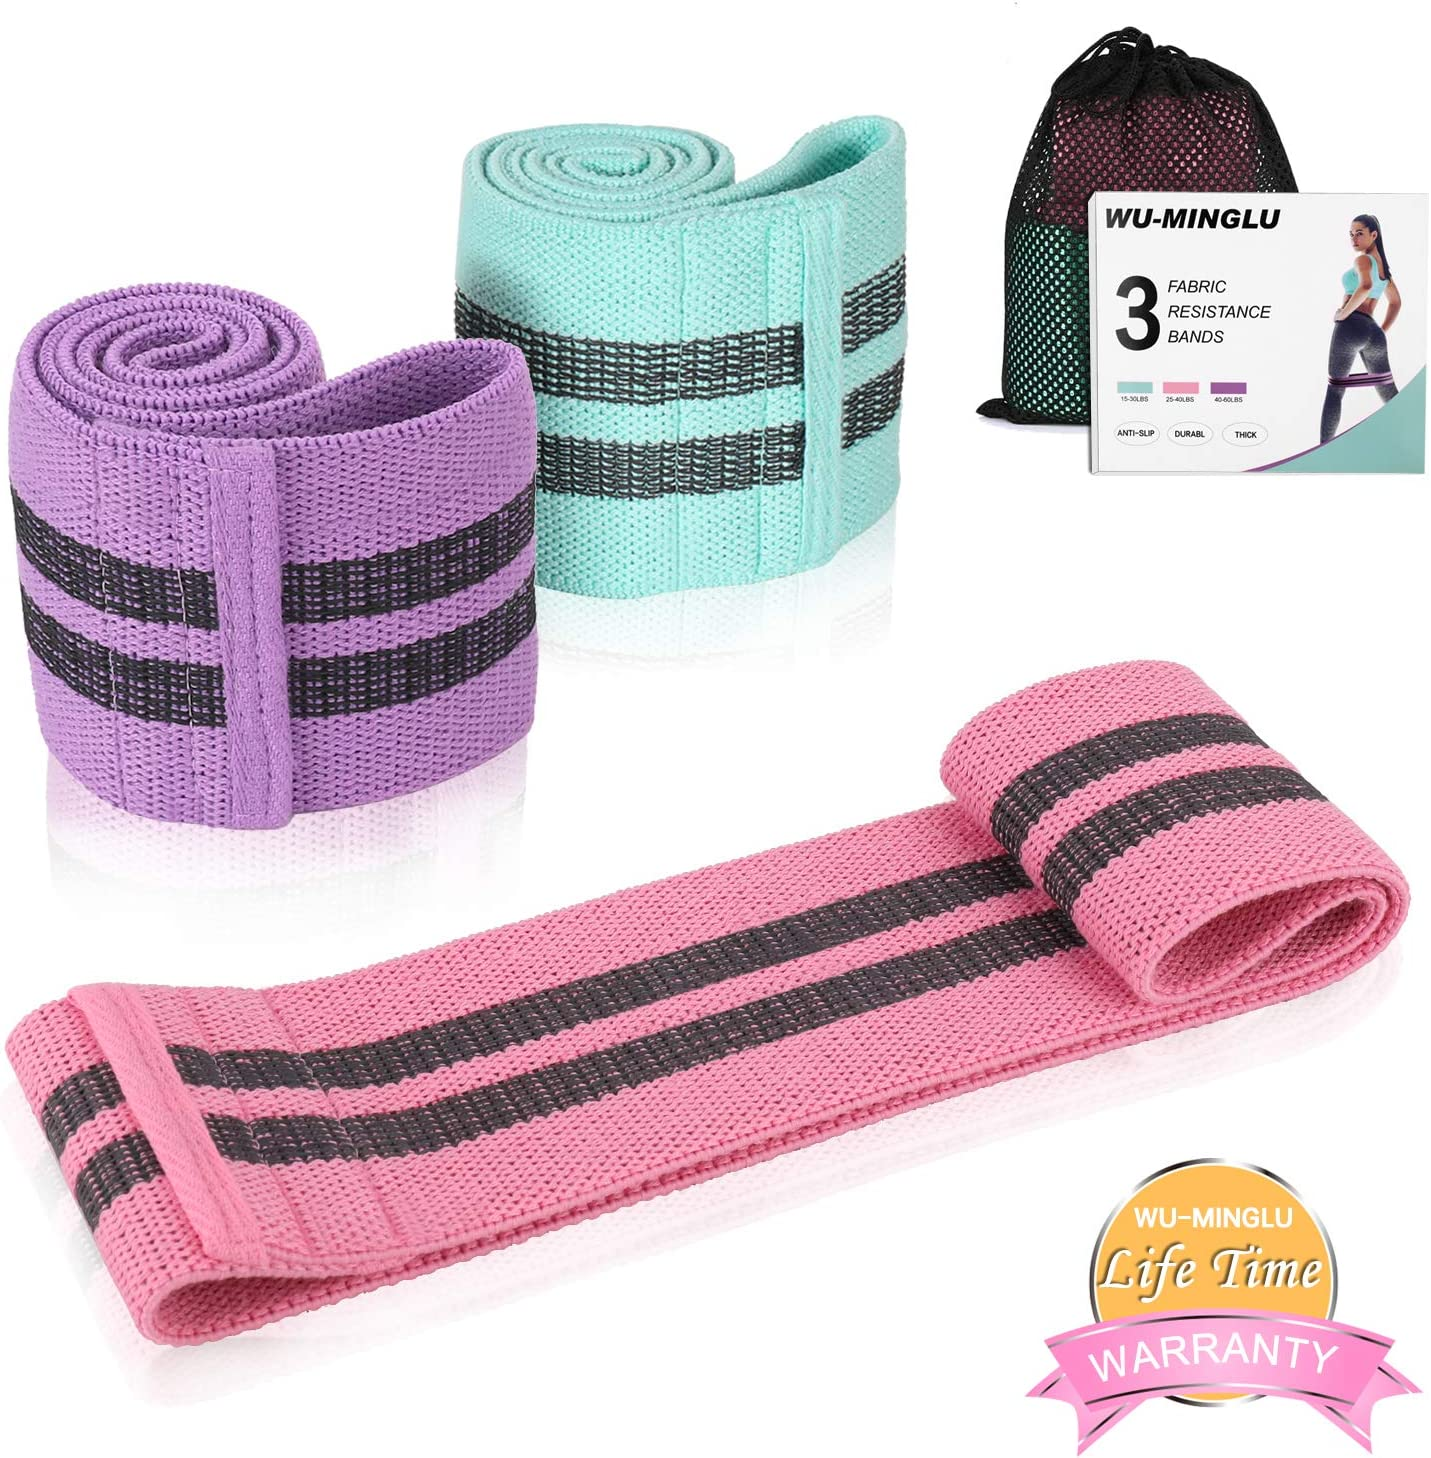 ink-topoint Fabric Circle Resistance Bands Sport Booty Band Set (3 Pack) WAS £11.99 NOW £5.99 w/code QDEBC6TP @ Amazon